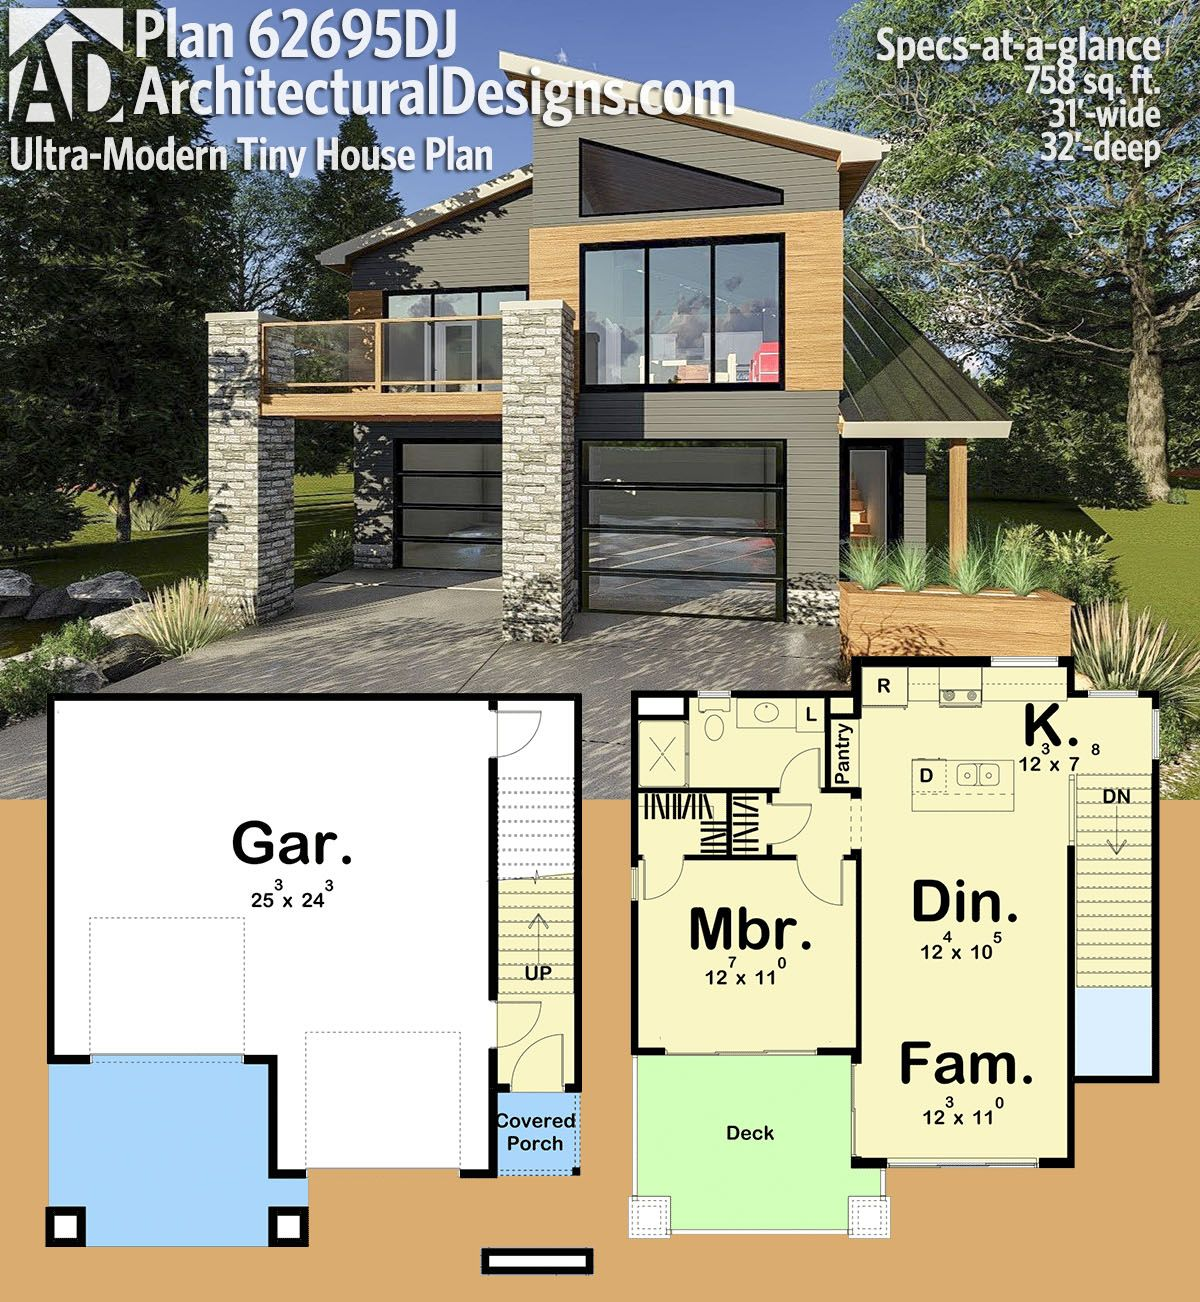 Architectural Designs Carriage House Plan 14631rk Gives: Plan 62695DJ: Ultra-Modern Tiny House Plan In 2019